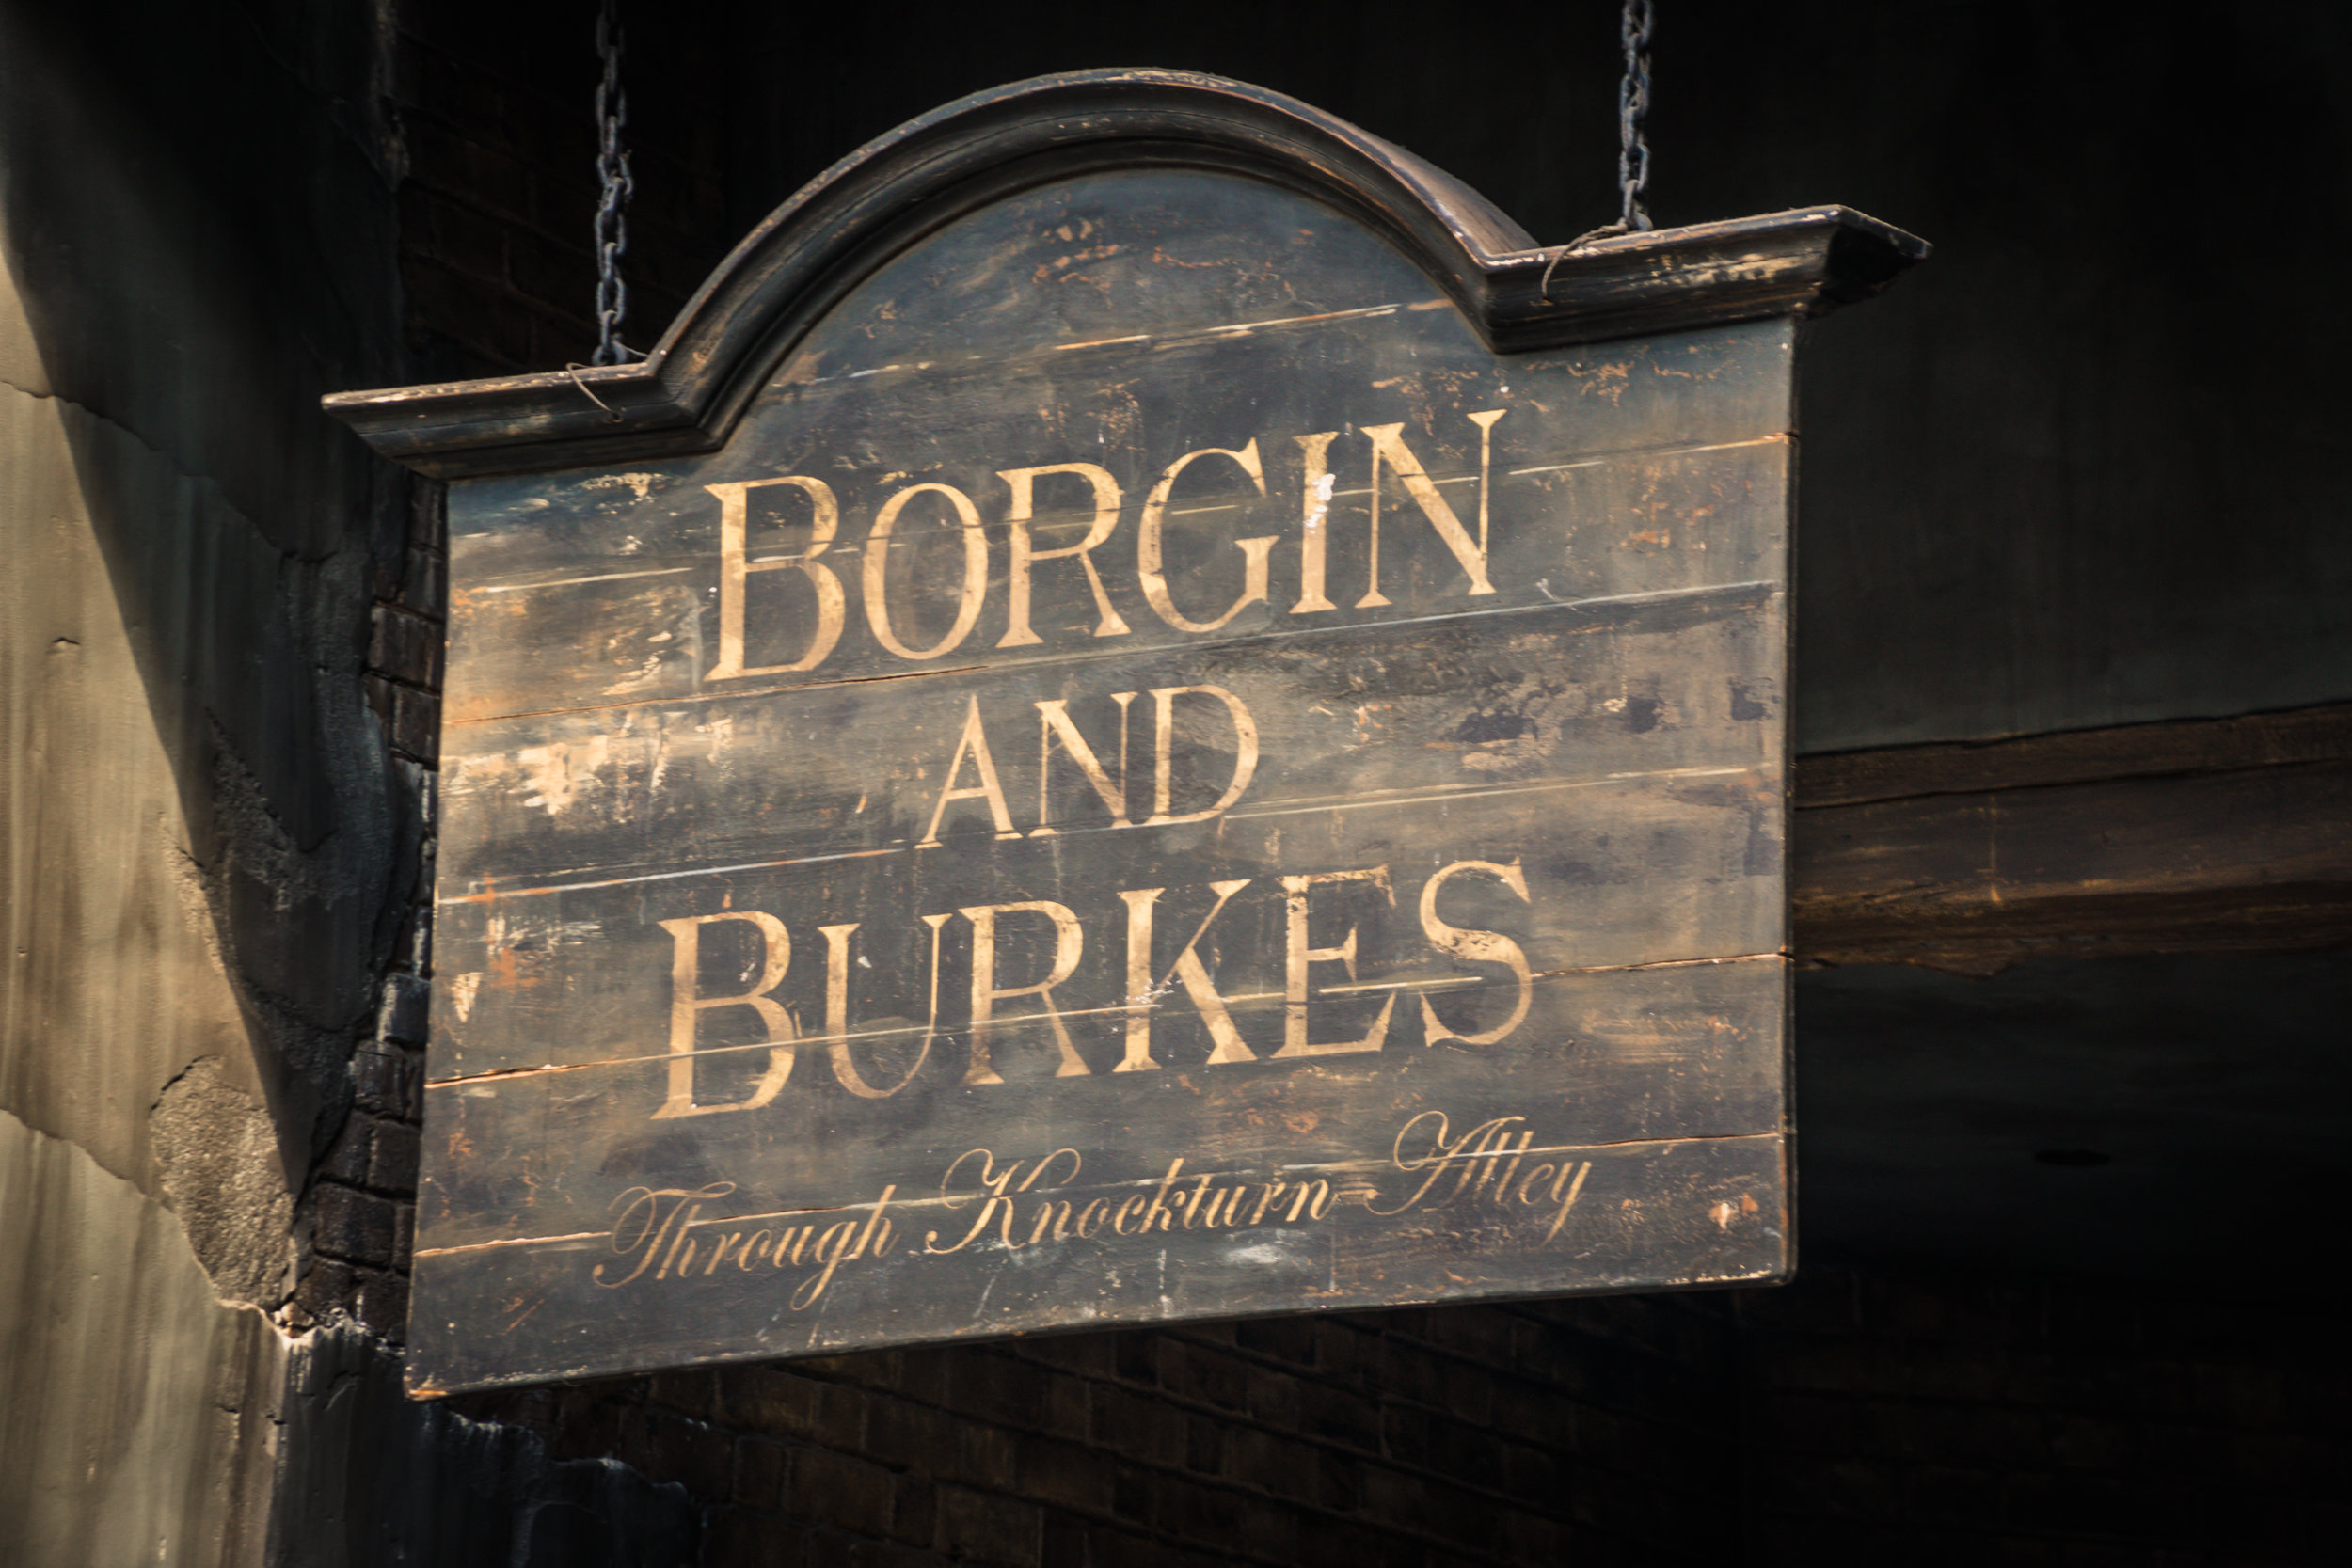 Borgin and Burkes